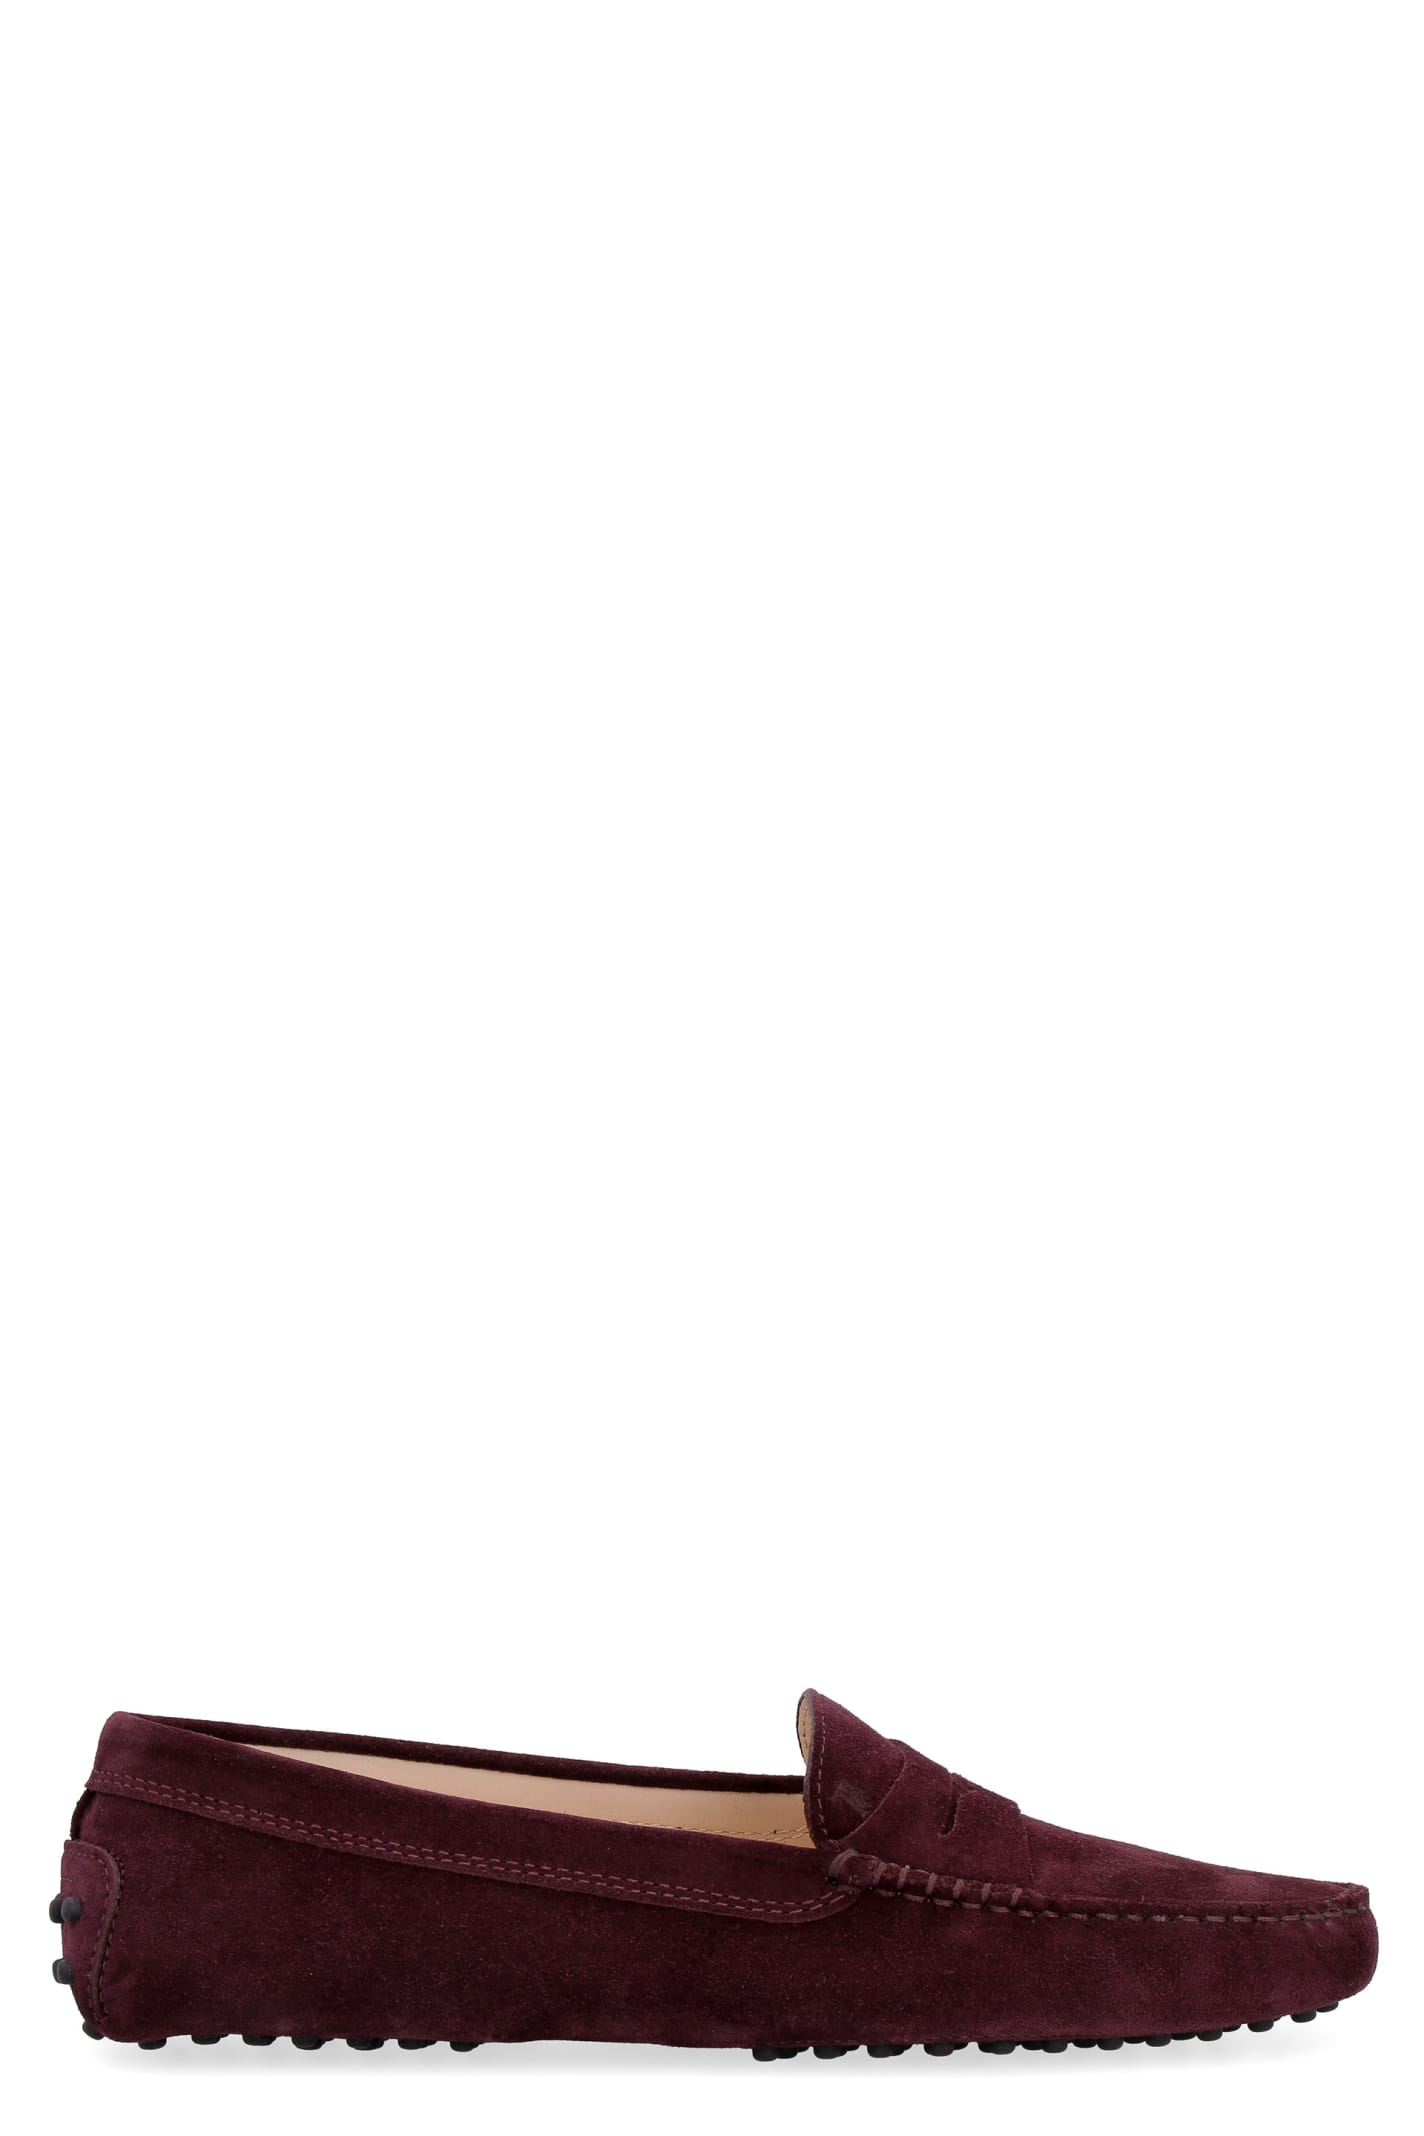 Tod's Suedes GOMMINO SUEDE LOAFERS